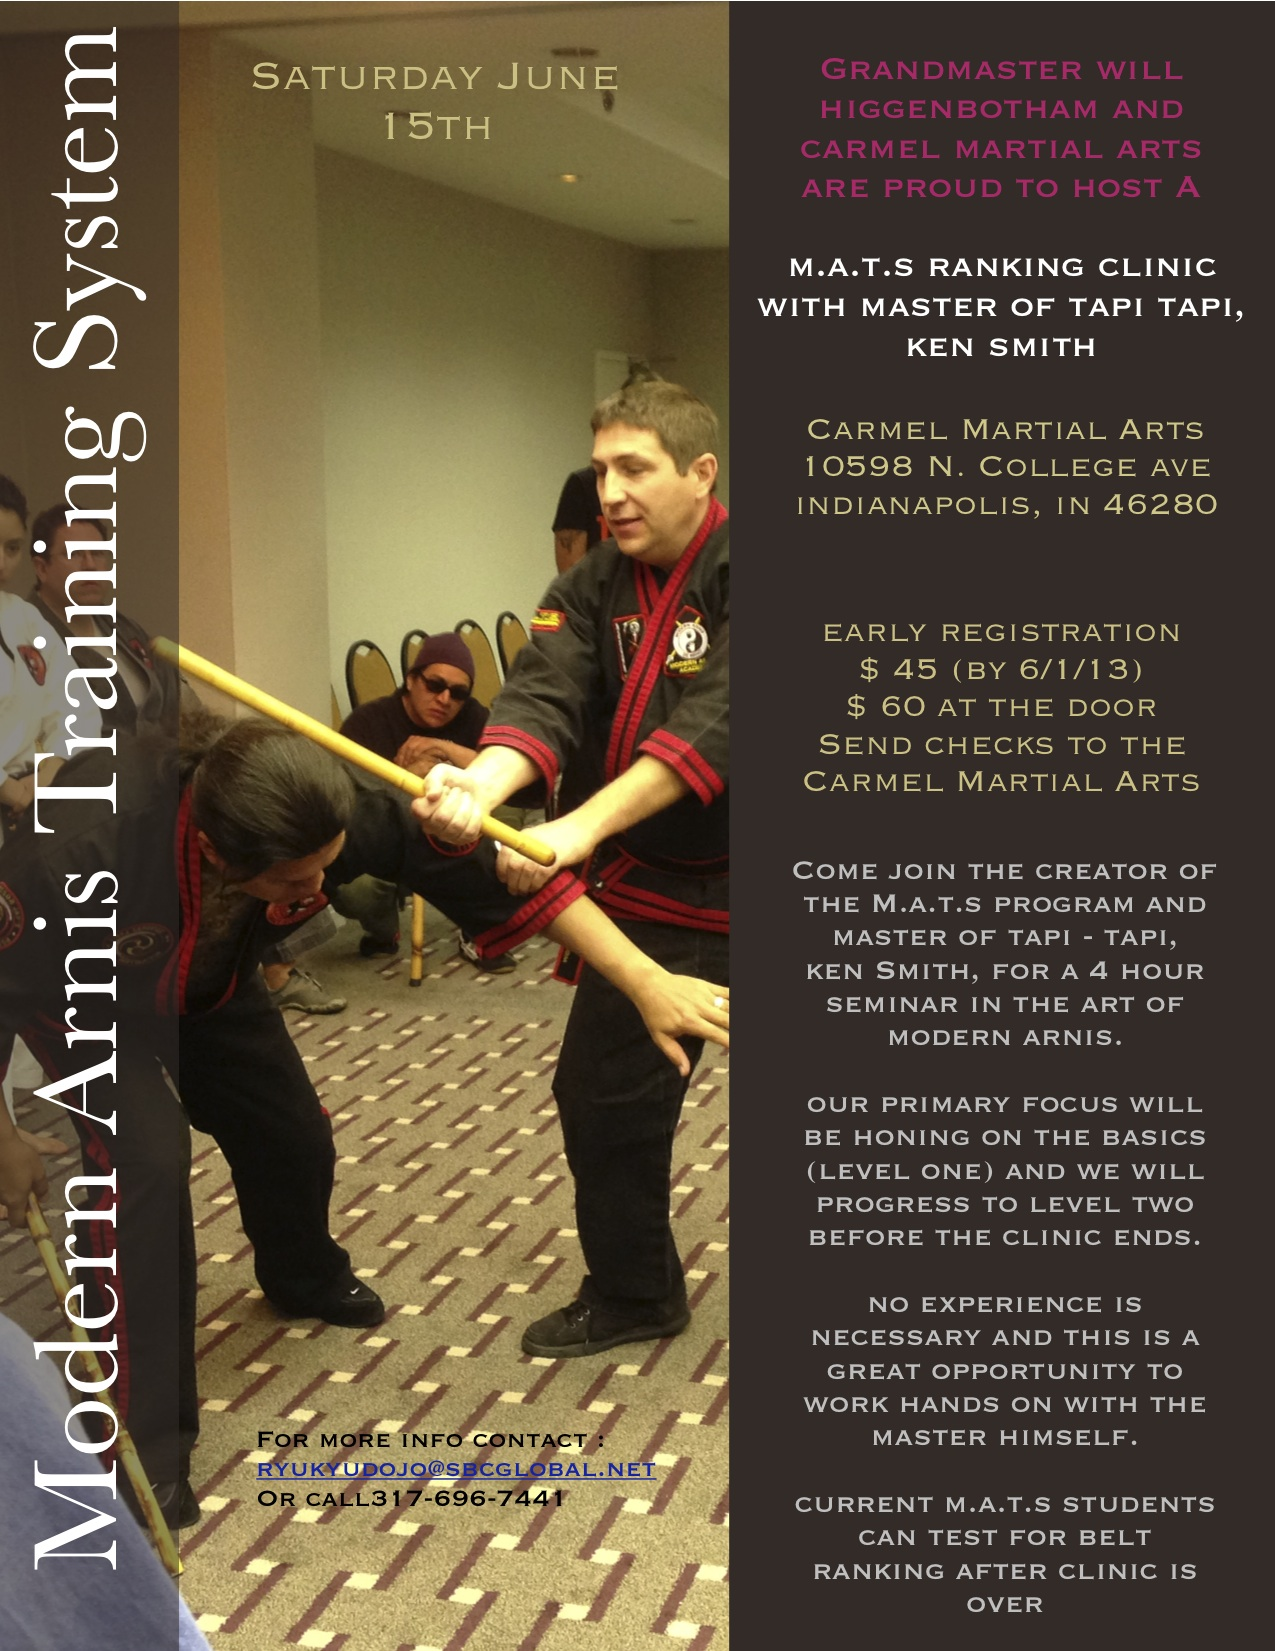 Modern Arnis Seminar with Master of Tapi Tapi, Ken Smith @ Carmel Martial Arts | Indianapolis | Indiana | United States